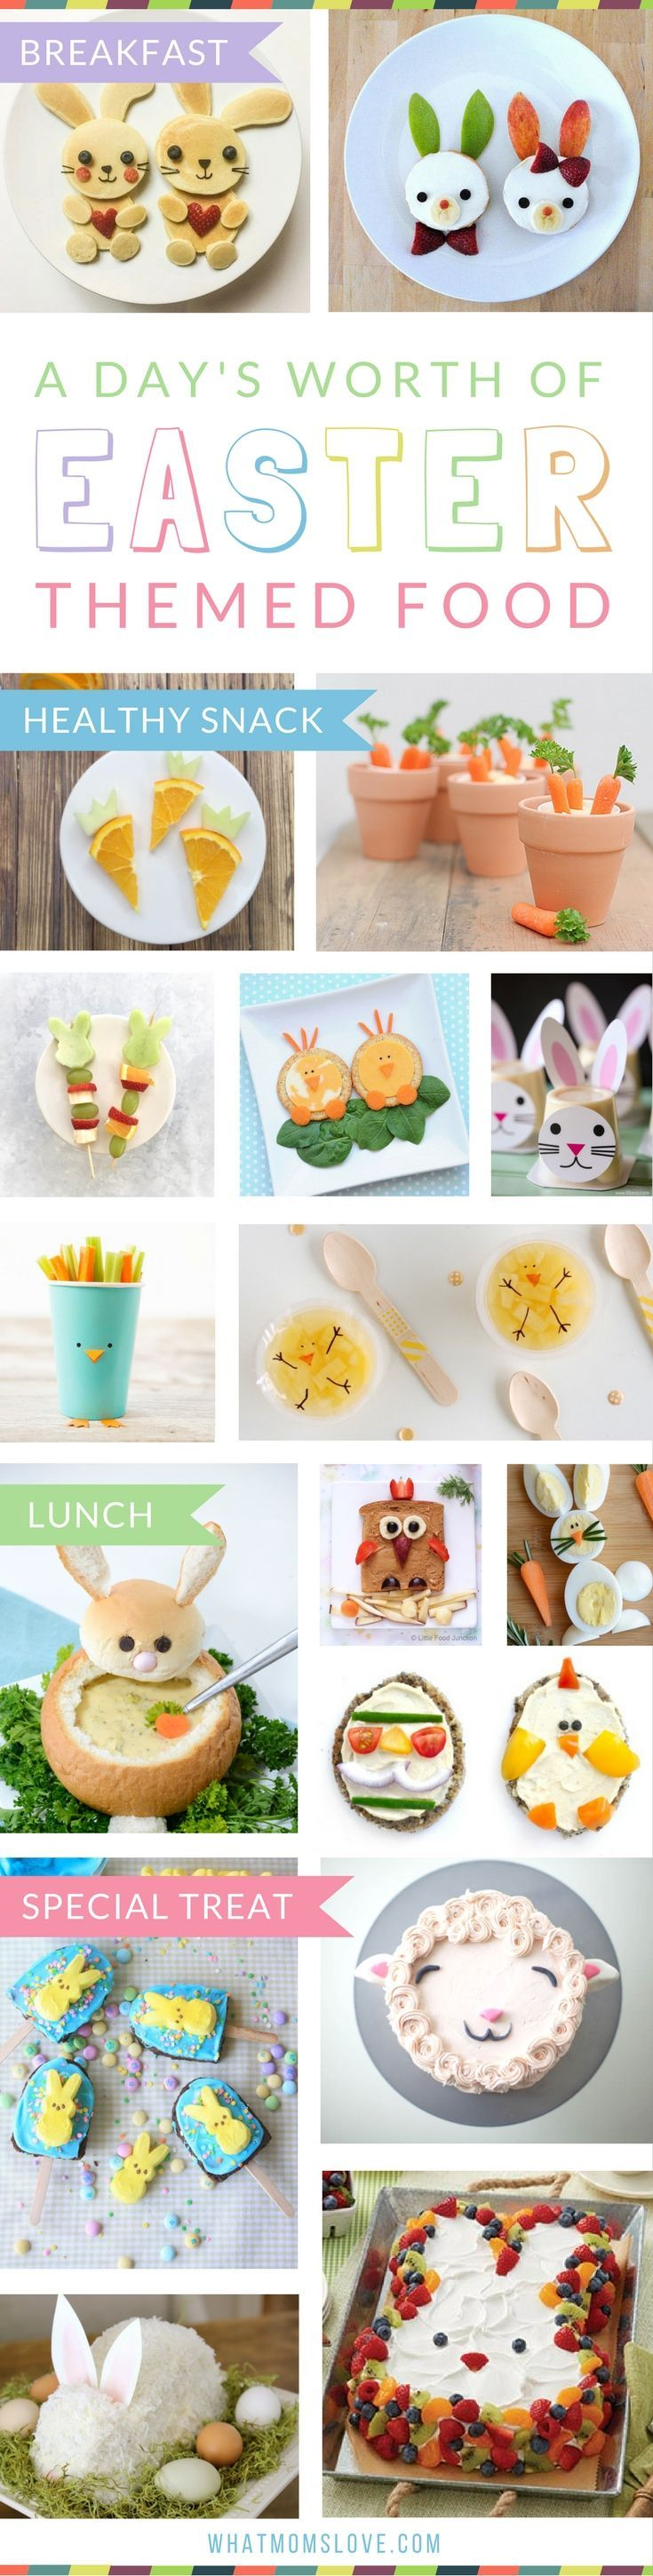 Fun Easter Food Ideas for Kids | Creative Easter themed recipes to make for your children for Breakfast, Brunch, Lunch or a Healthy Snack. Plus, sweet treats and desserts that are perfect for your child's school class party or just for fun - super cute yet easy including cakes, bark, brownies, peeps, bunnies, lambs, mini eggs, rice krispies and more! Head to whatmomslove.com for all the recipes.